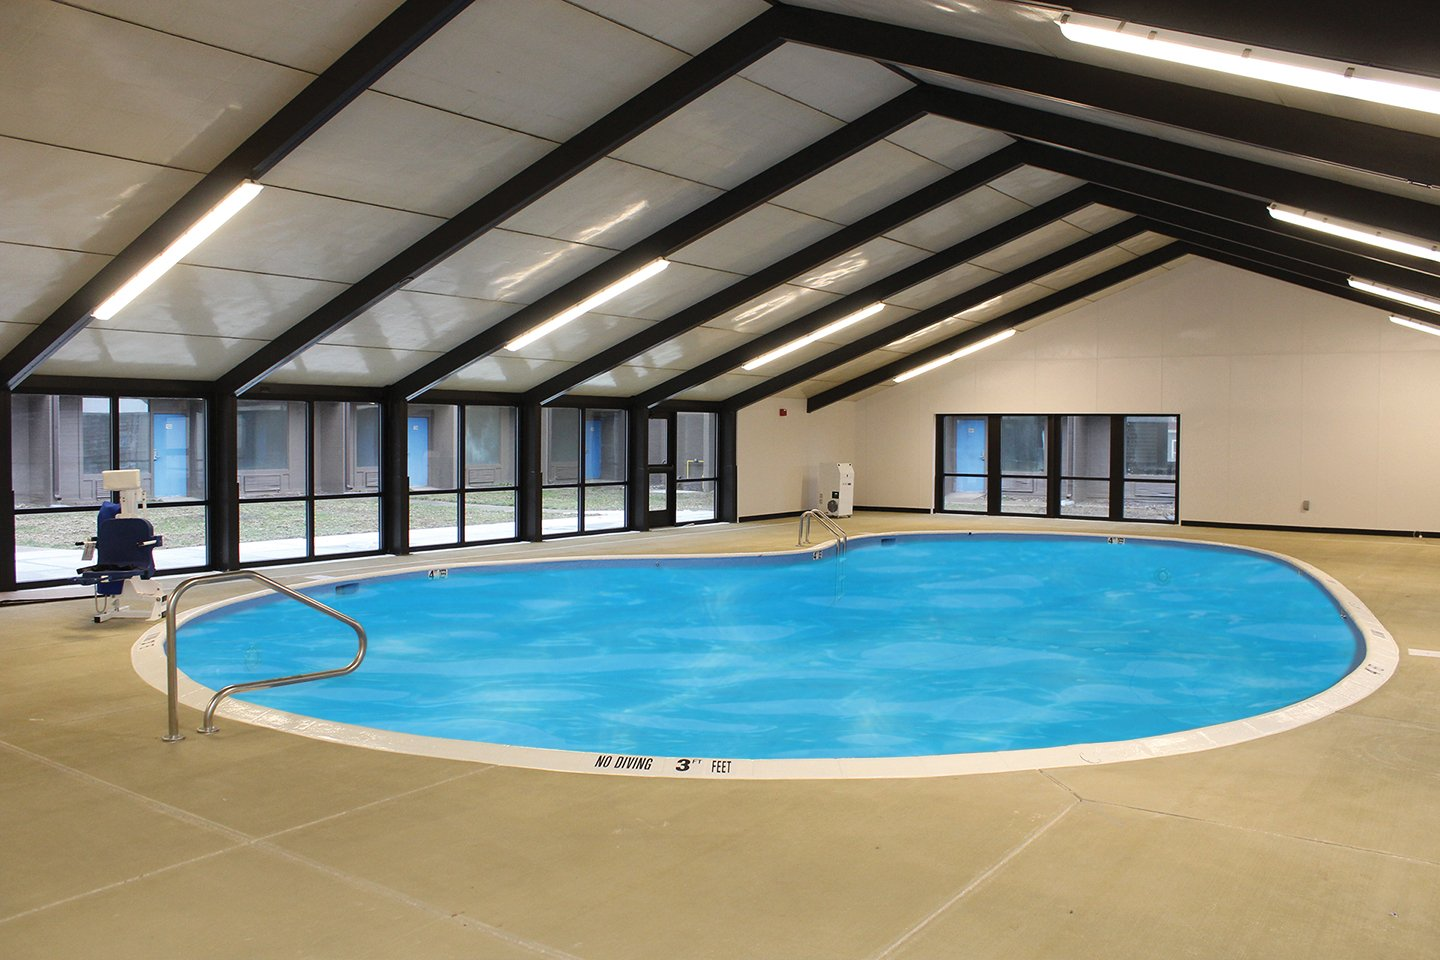 Pool at the Vernon Square apartments, one of many activities for active seniors